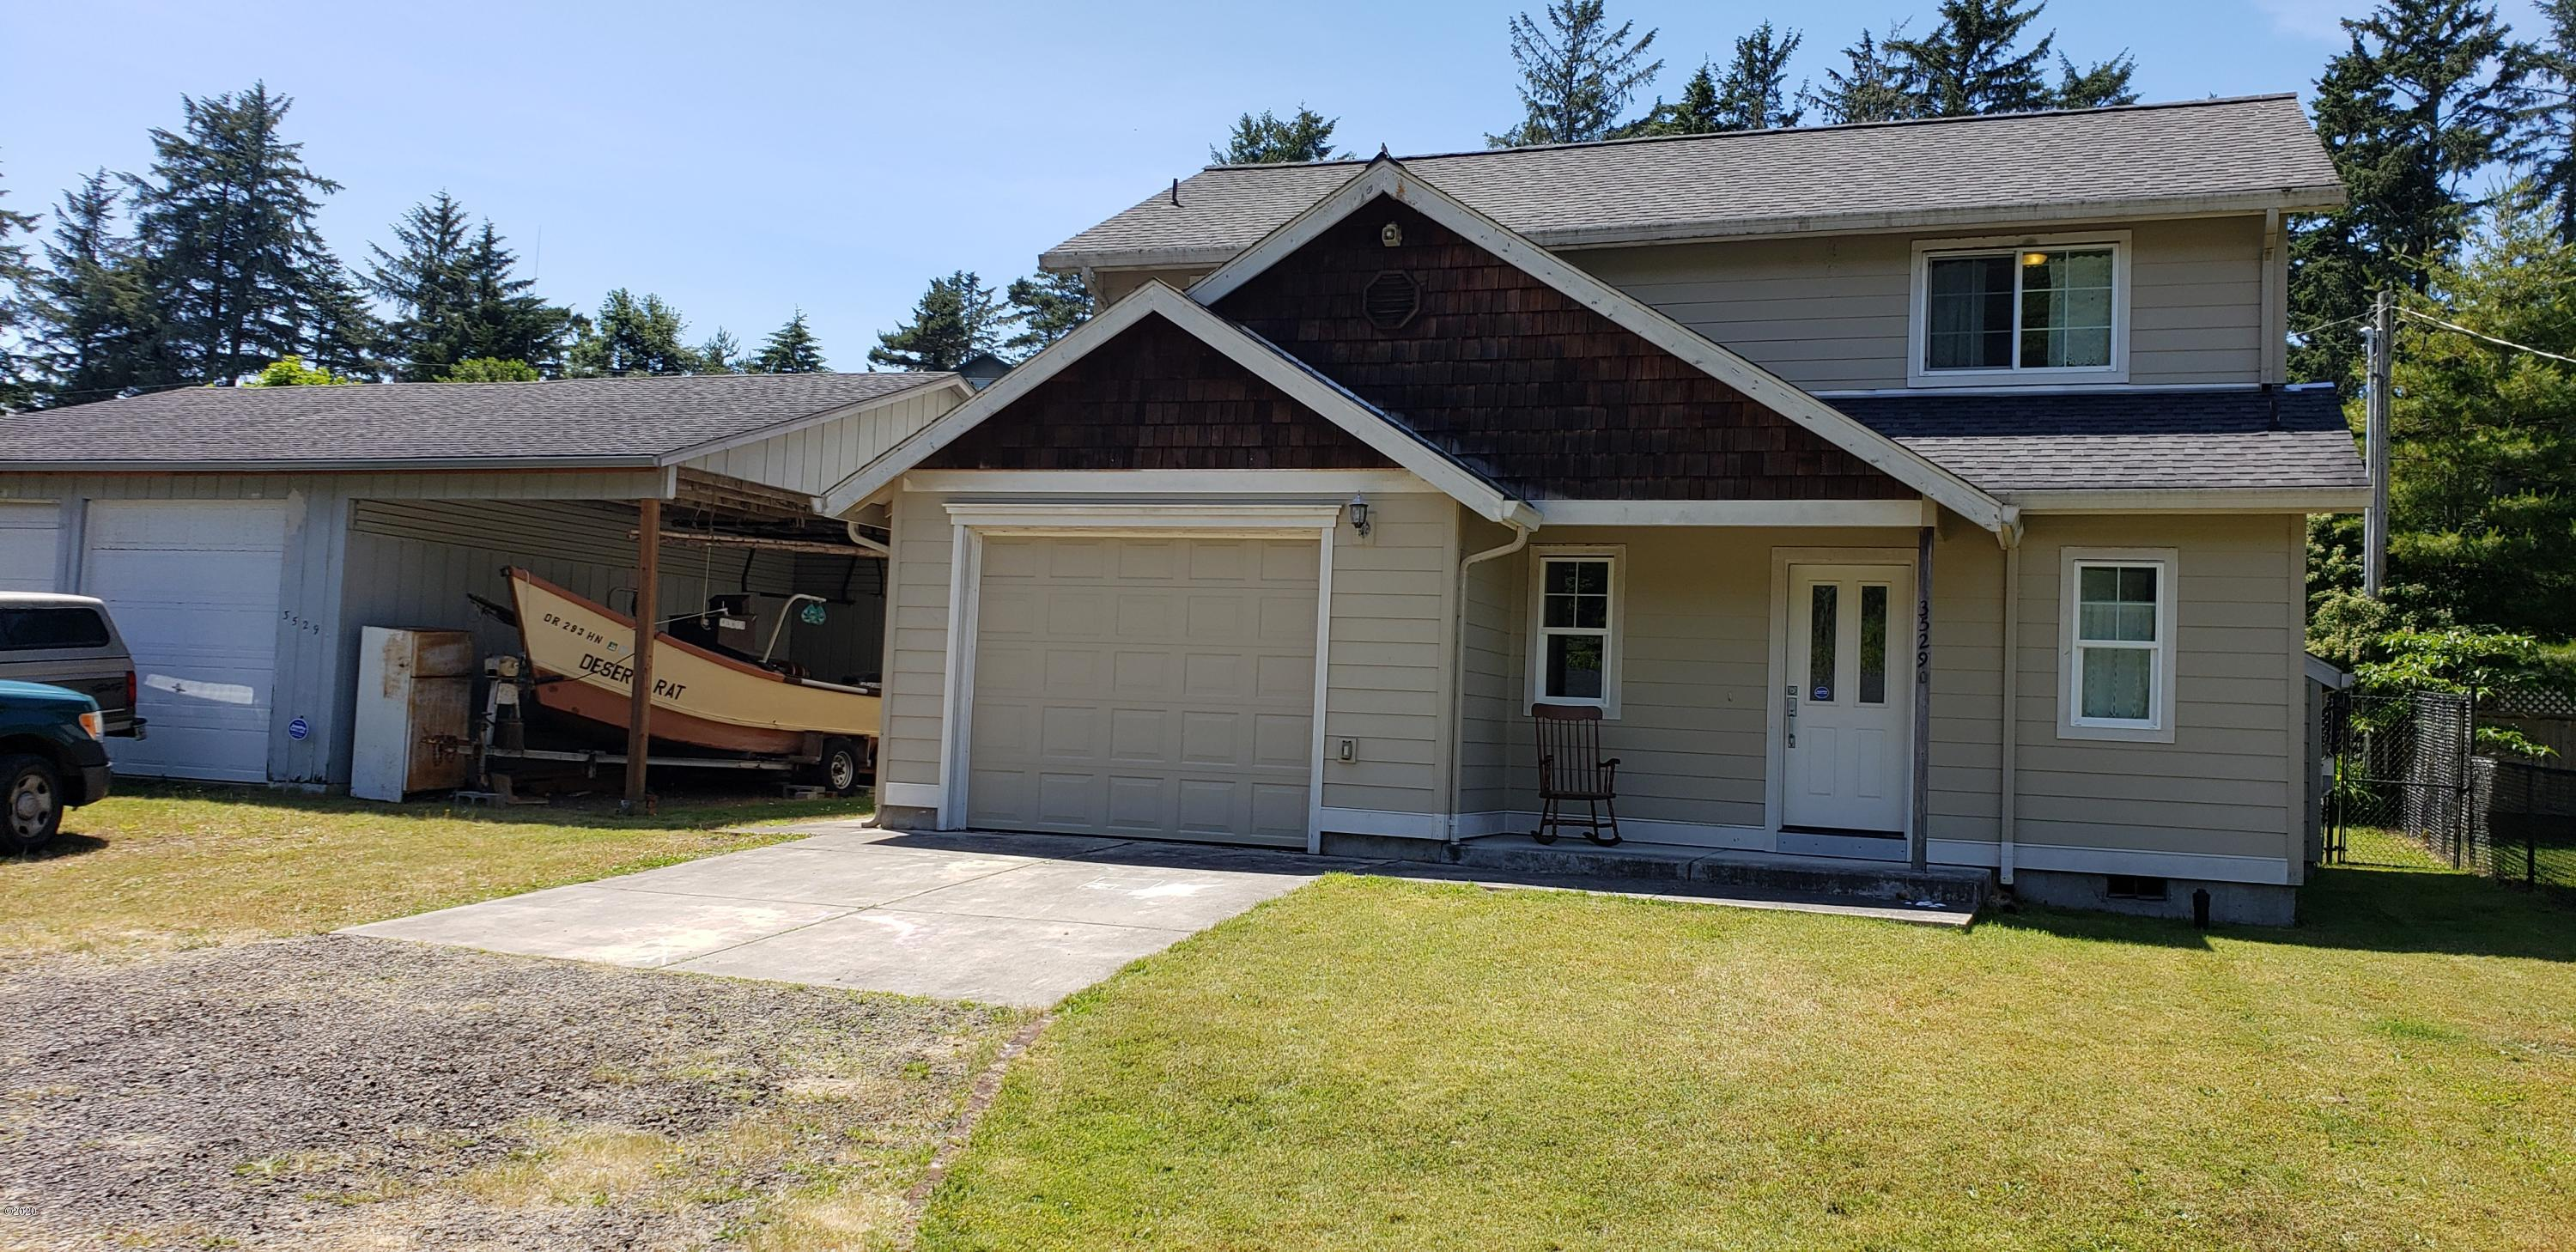 35290 Roger Ave, Pacific City, OR 97135 - 20200618_143252